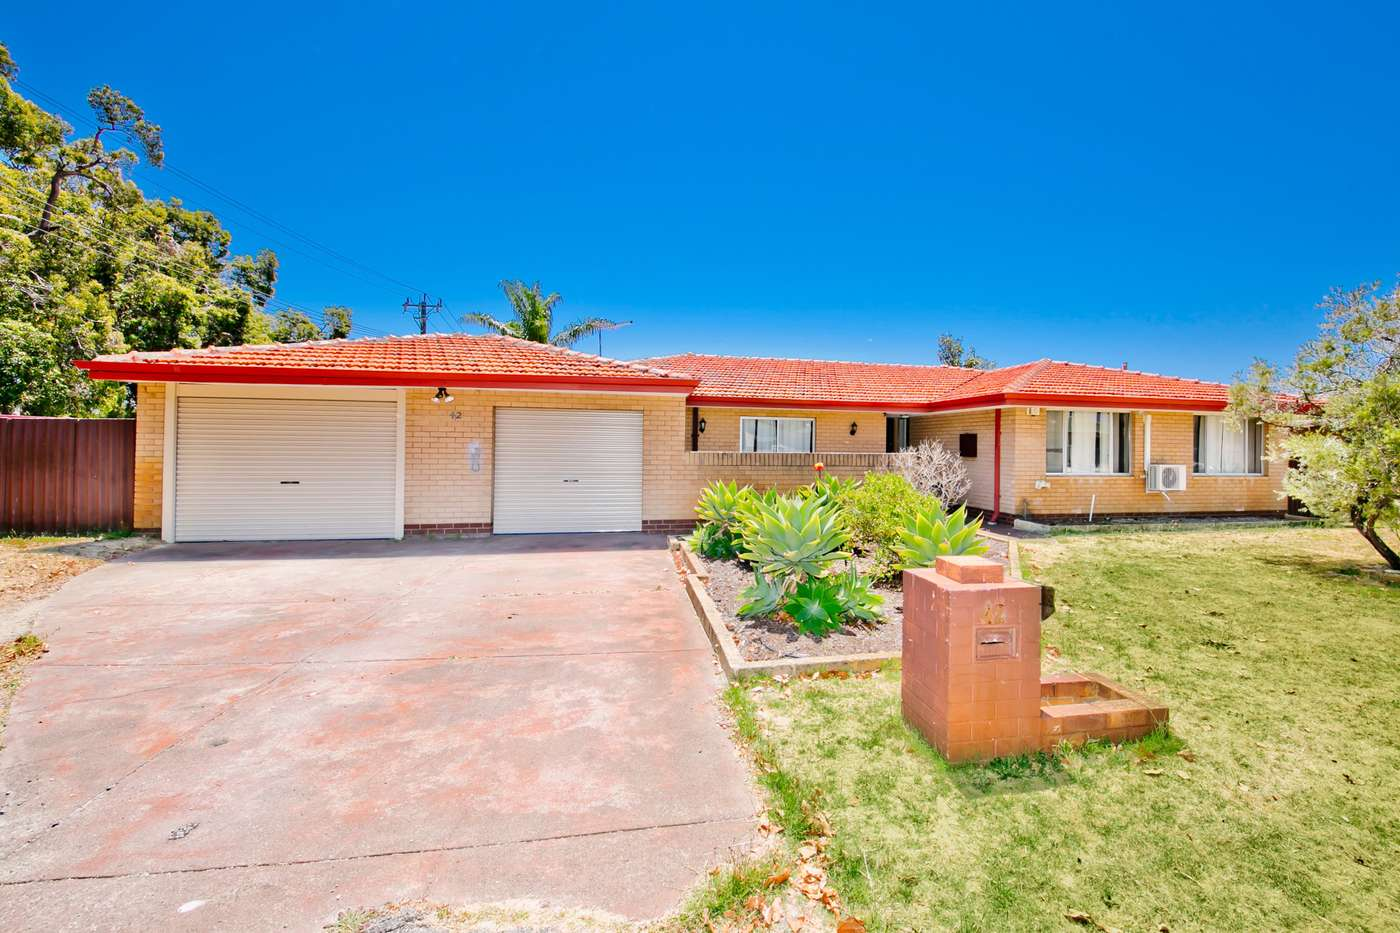 Main view of Homely house listing, 42 sandleford Way, Morley, WA 6062